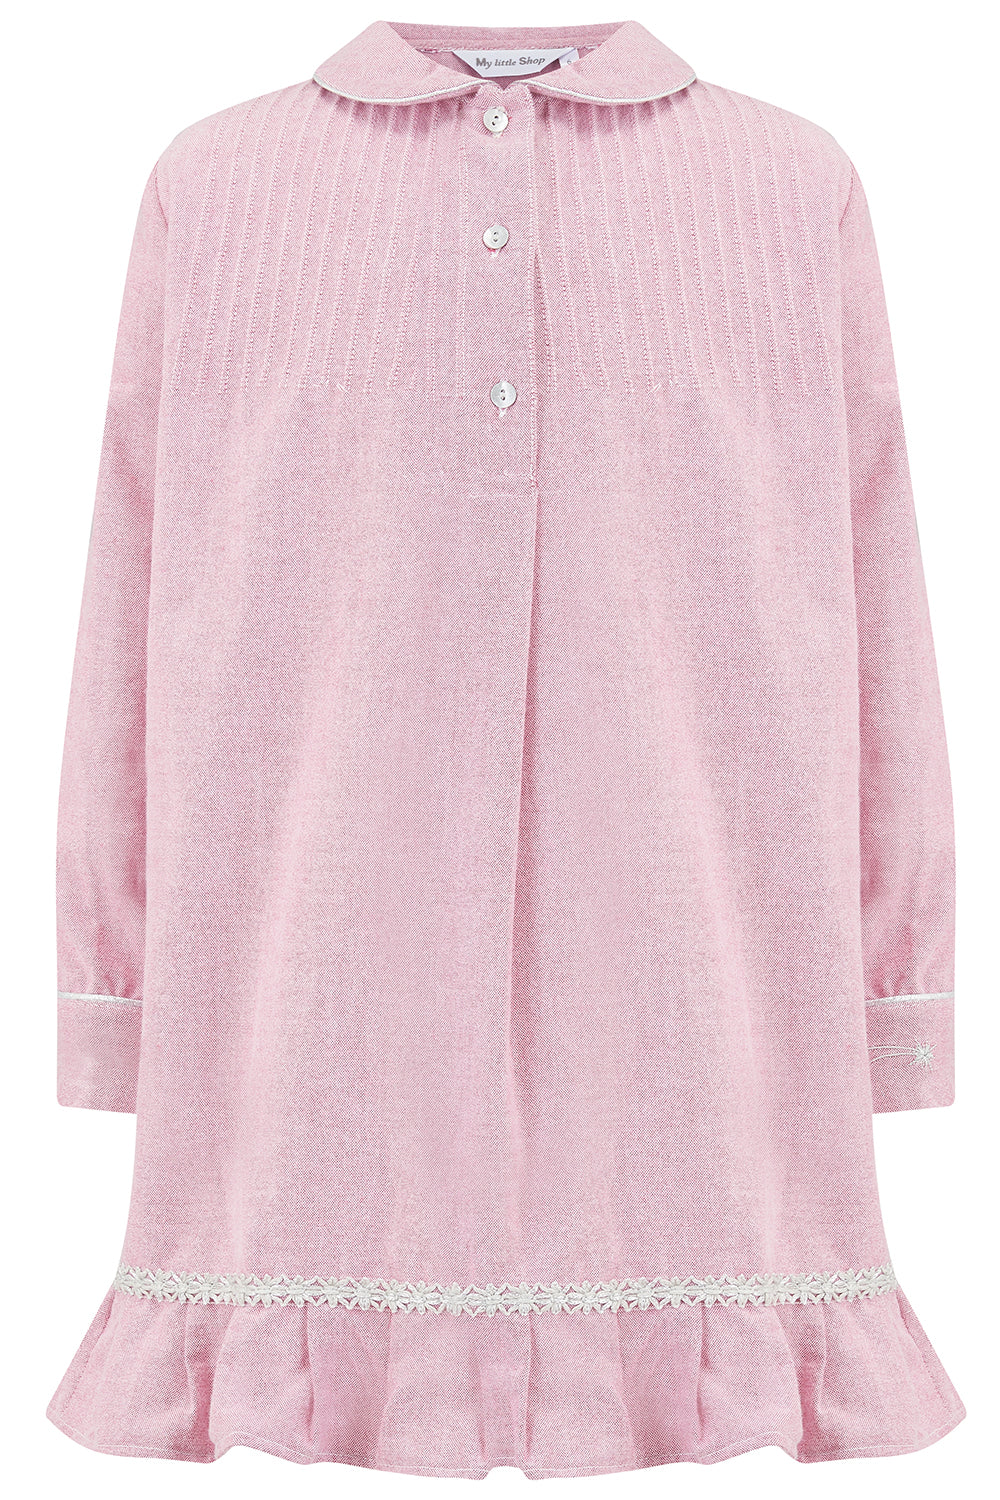 Debie Pink Girls Nightgown